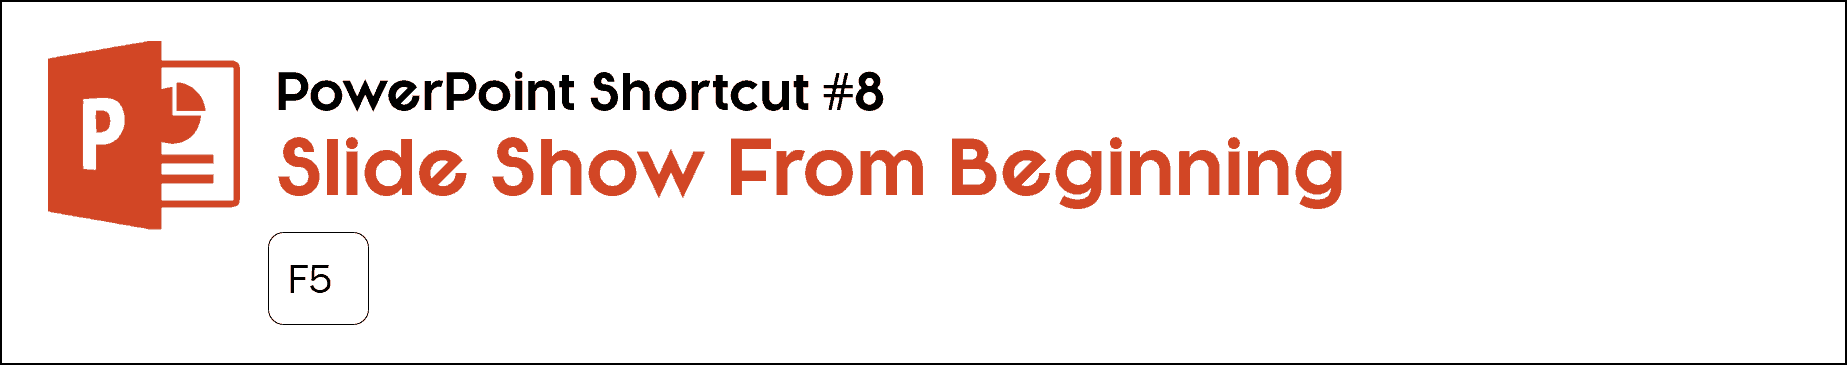 To start a slideshow in PowerPoint from the beginning, hit F5 on your keyboard